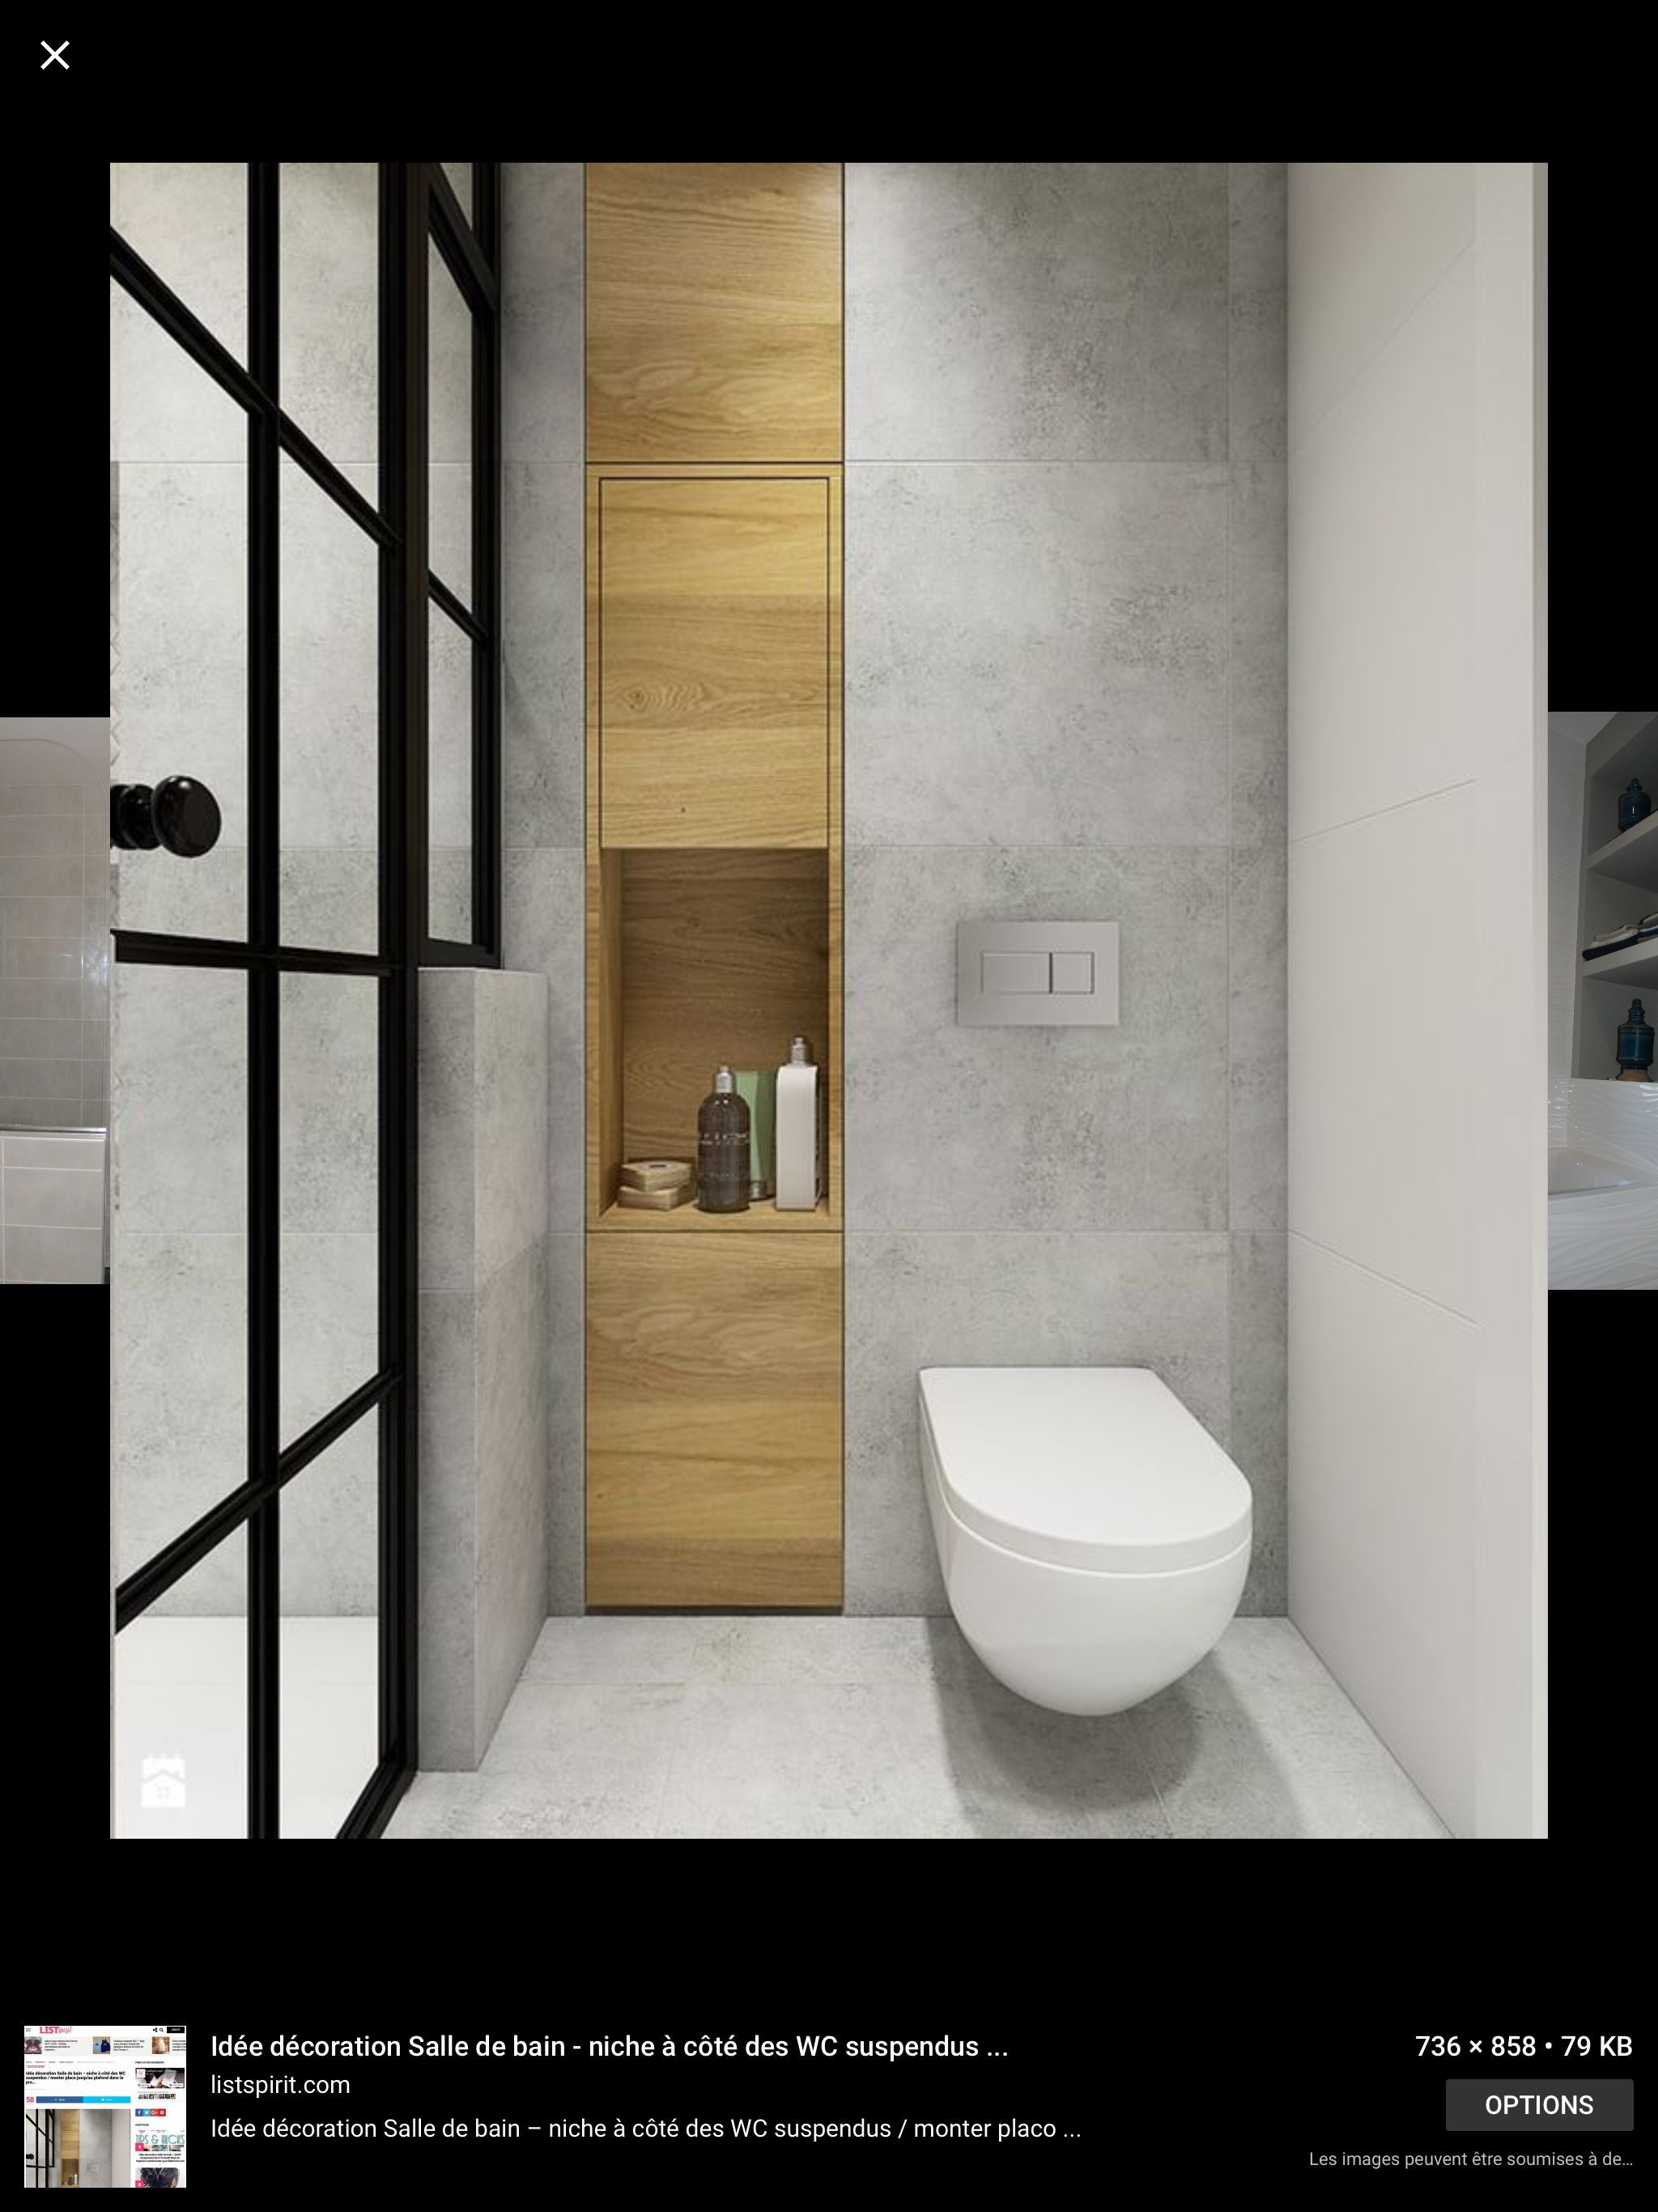 Pin by Lolo Benzi on Toilettes | Pinterest | Toilet, Washroom and ...